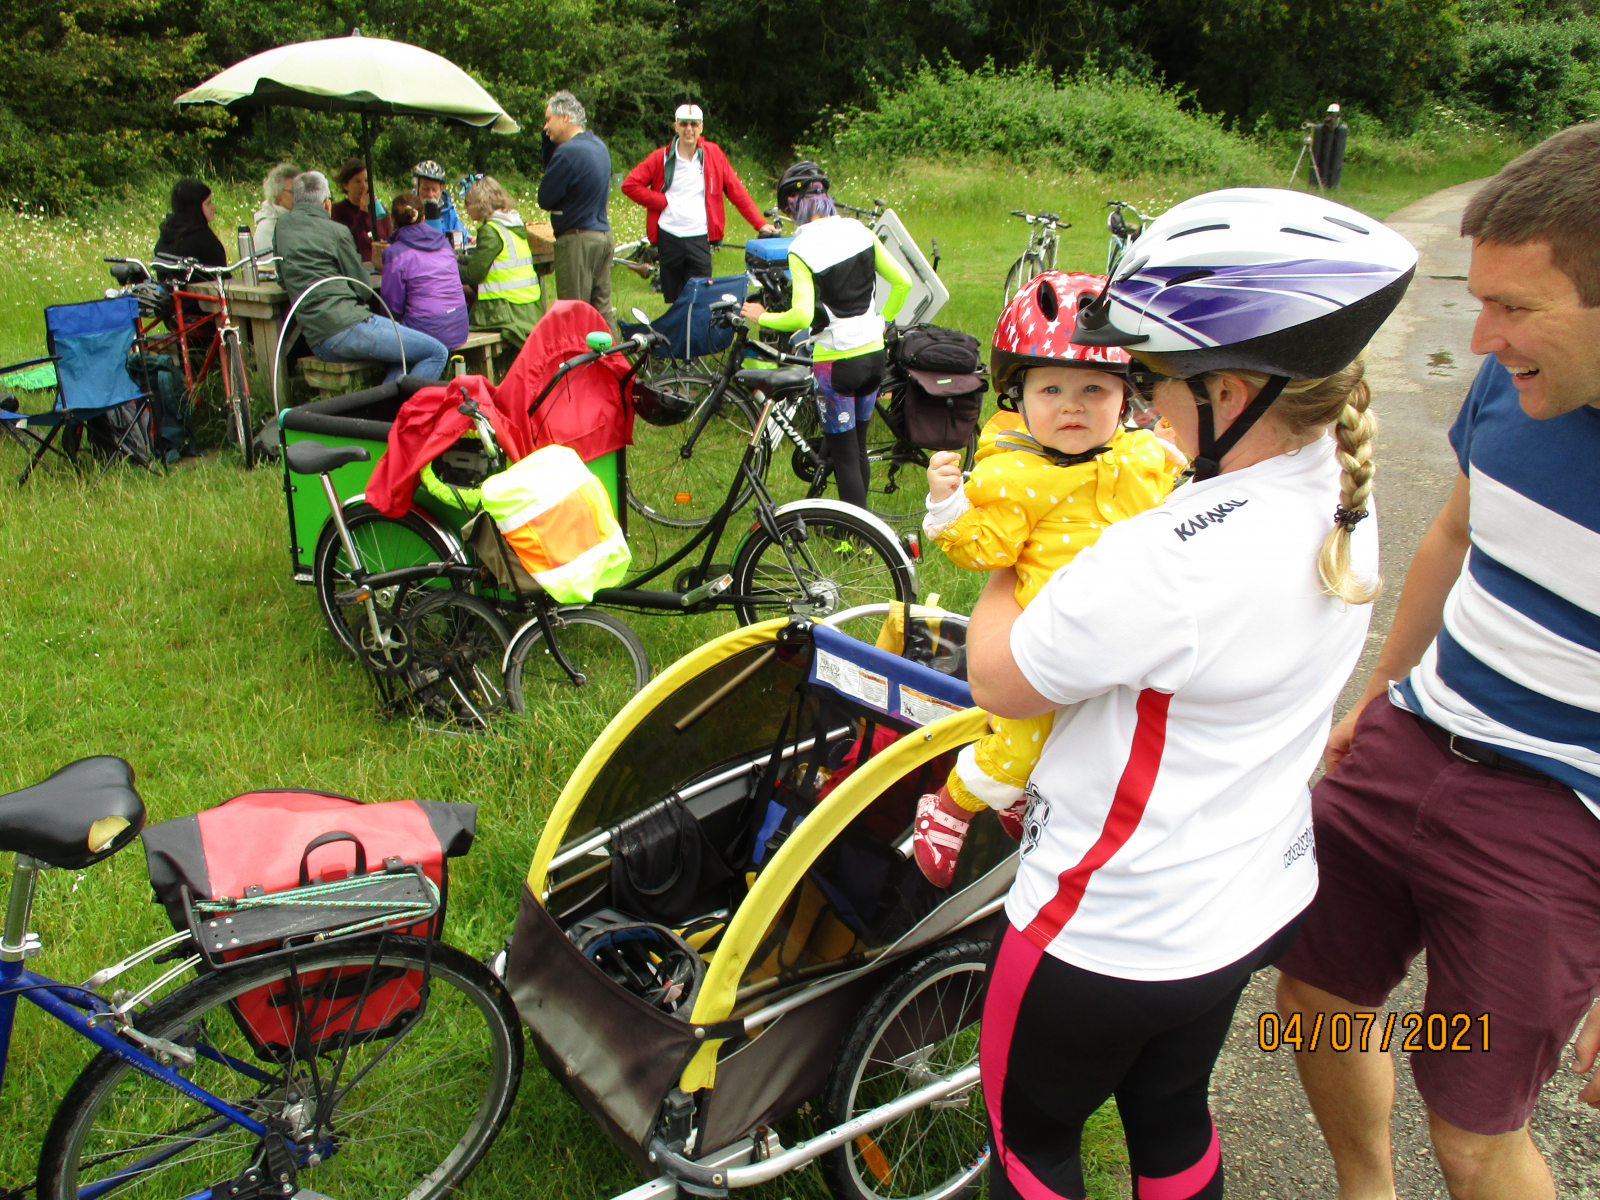 One of our Youngest Supporters arriving in a bike trailer